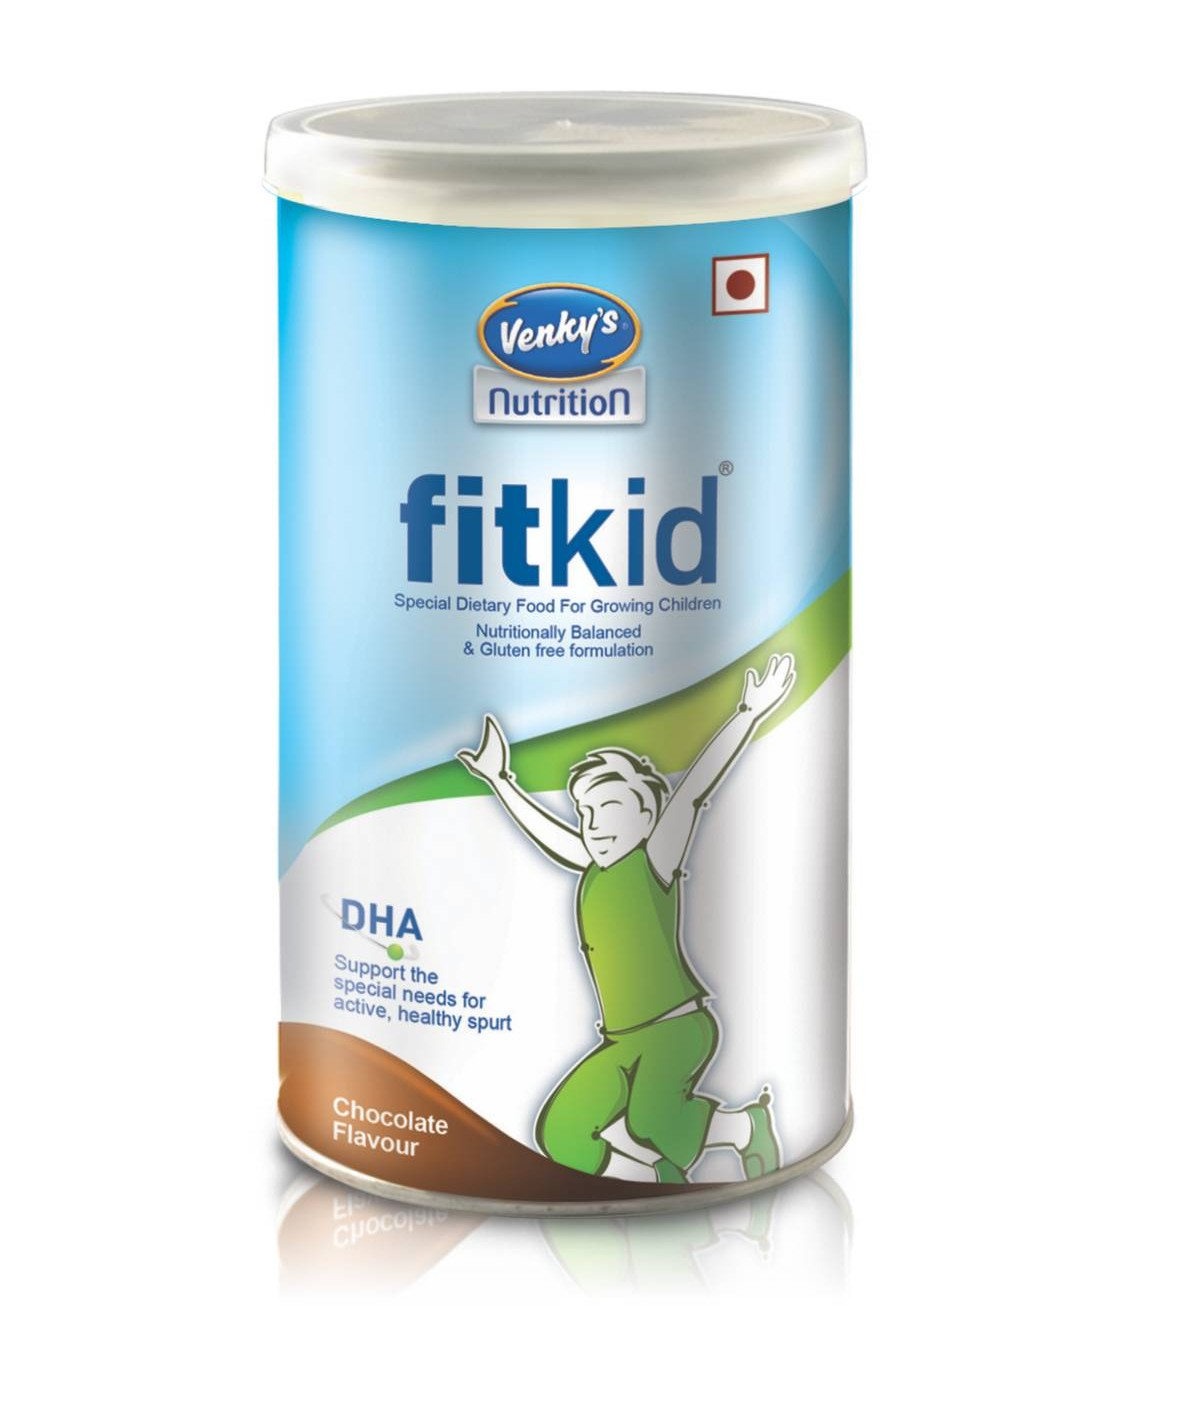 fitkidⓇ